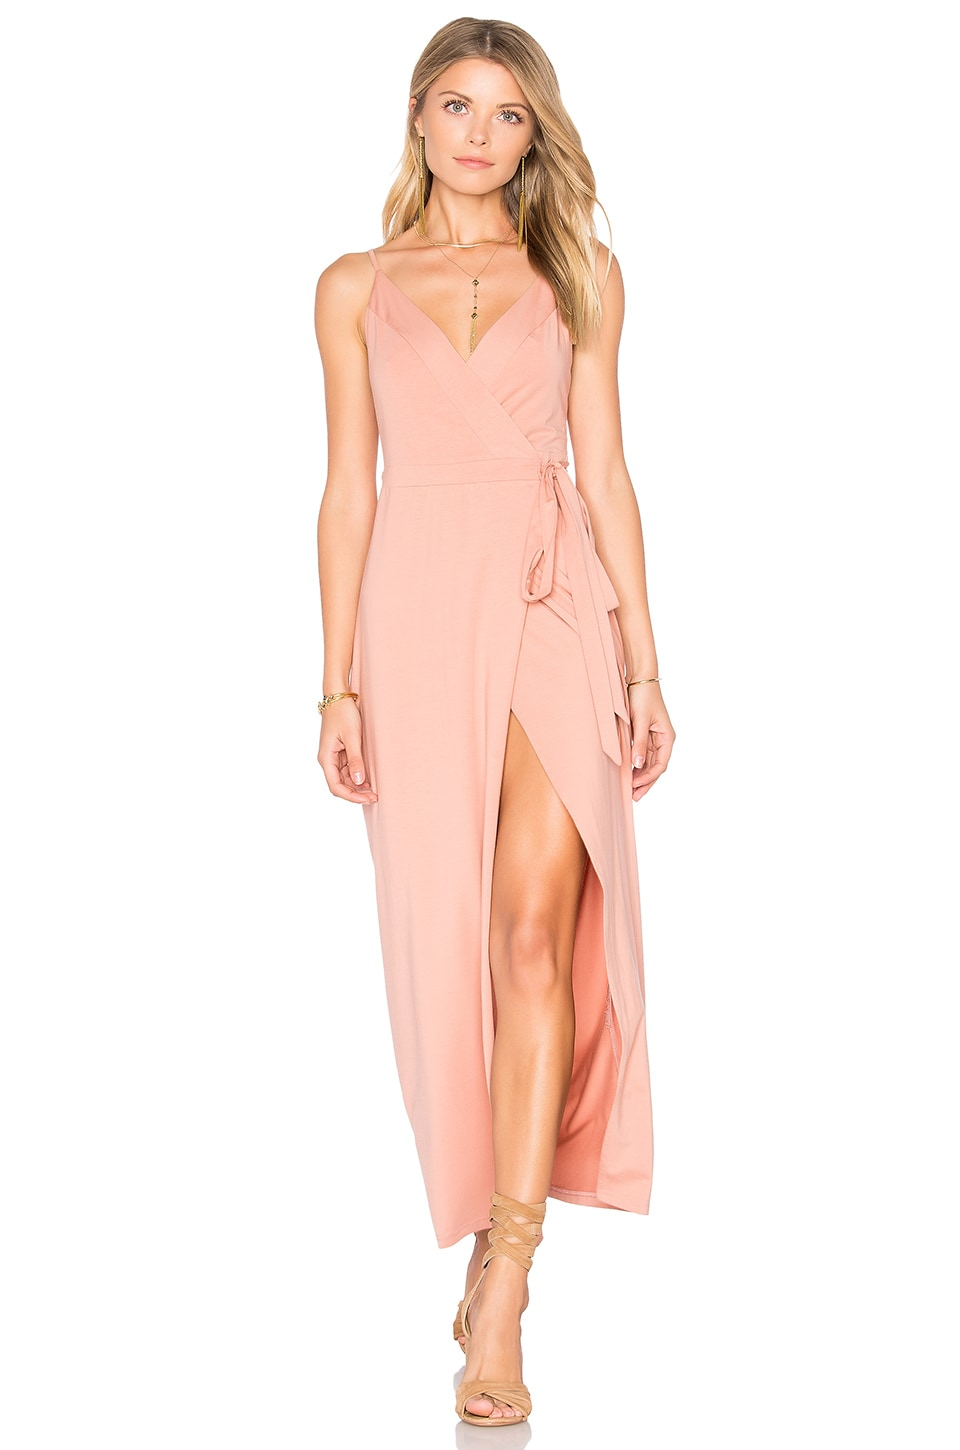 WYLDR Wrap Over Dress in Blush